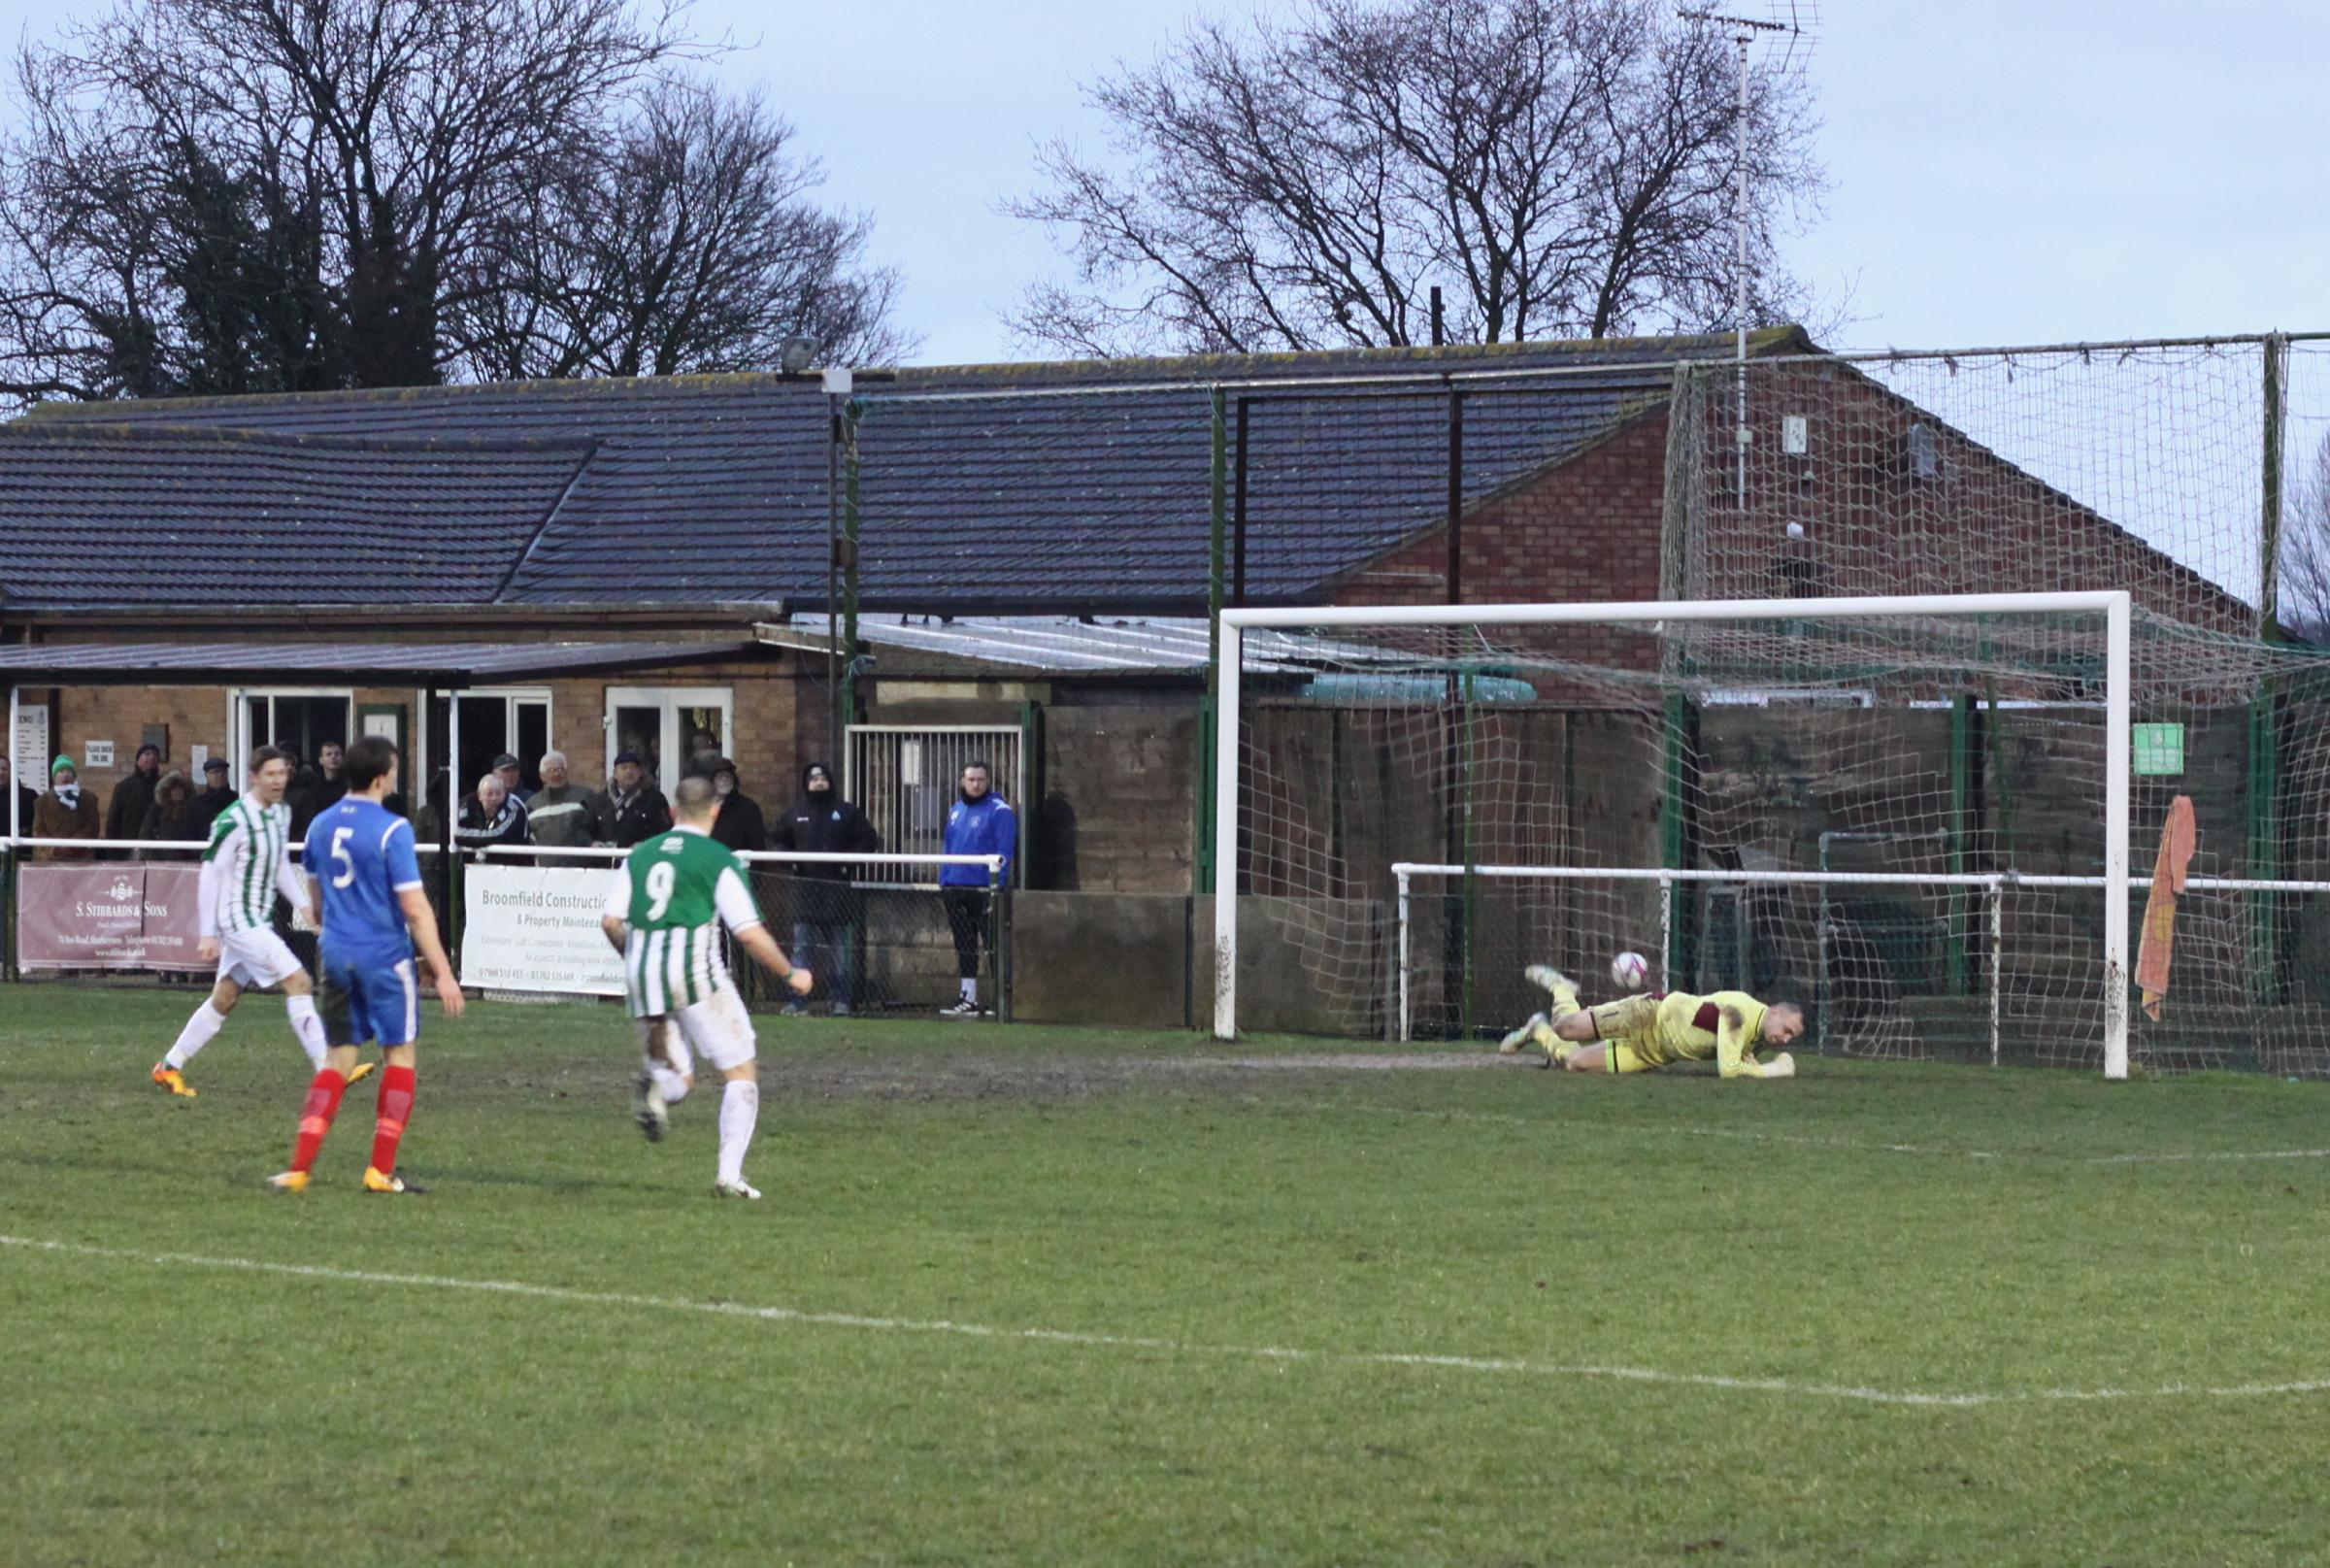 Euphoria - Neil Richmond scores the winner from the penalty spot Picture: MARK CLEVELAND